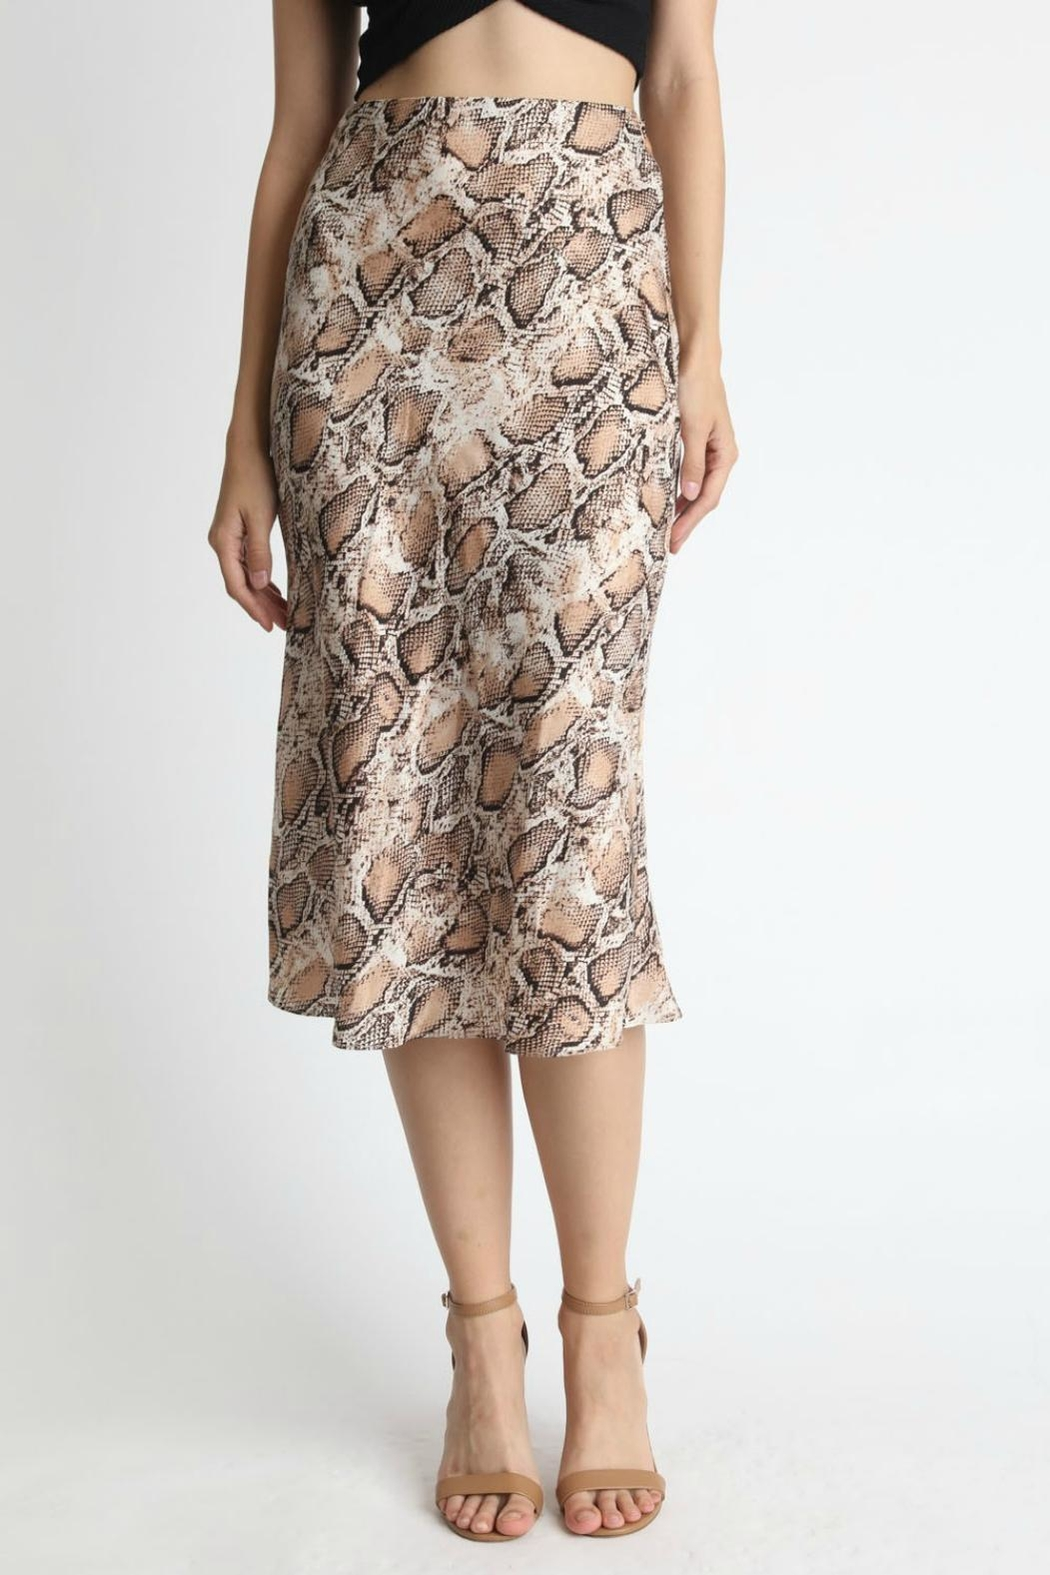 Pretty Little Things Snakeskin Midi Skirt - Main Image